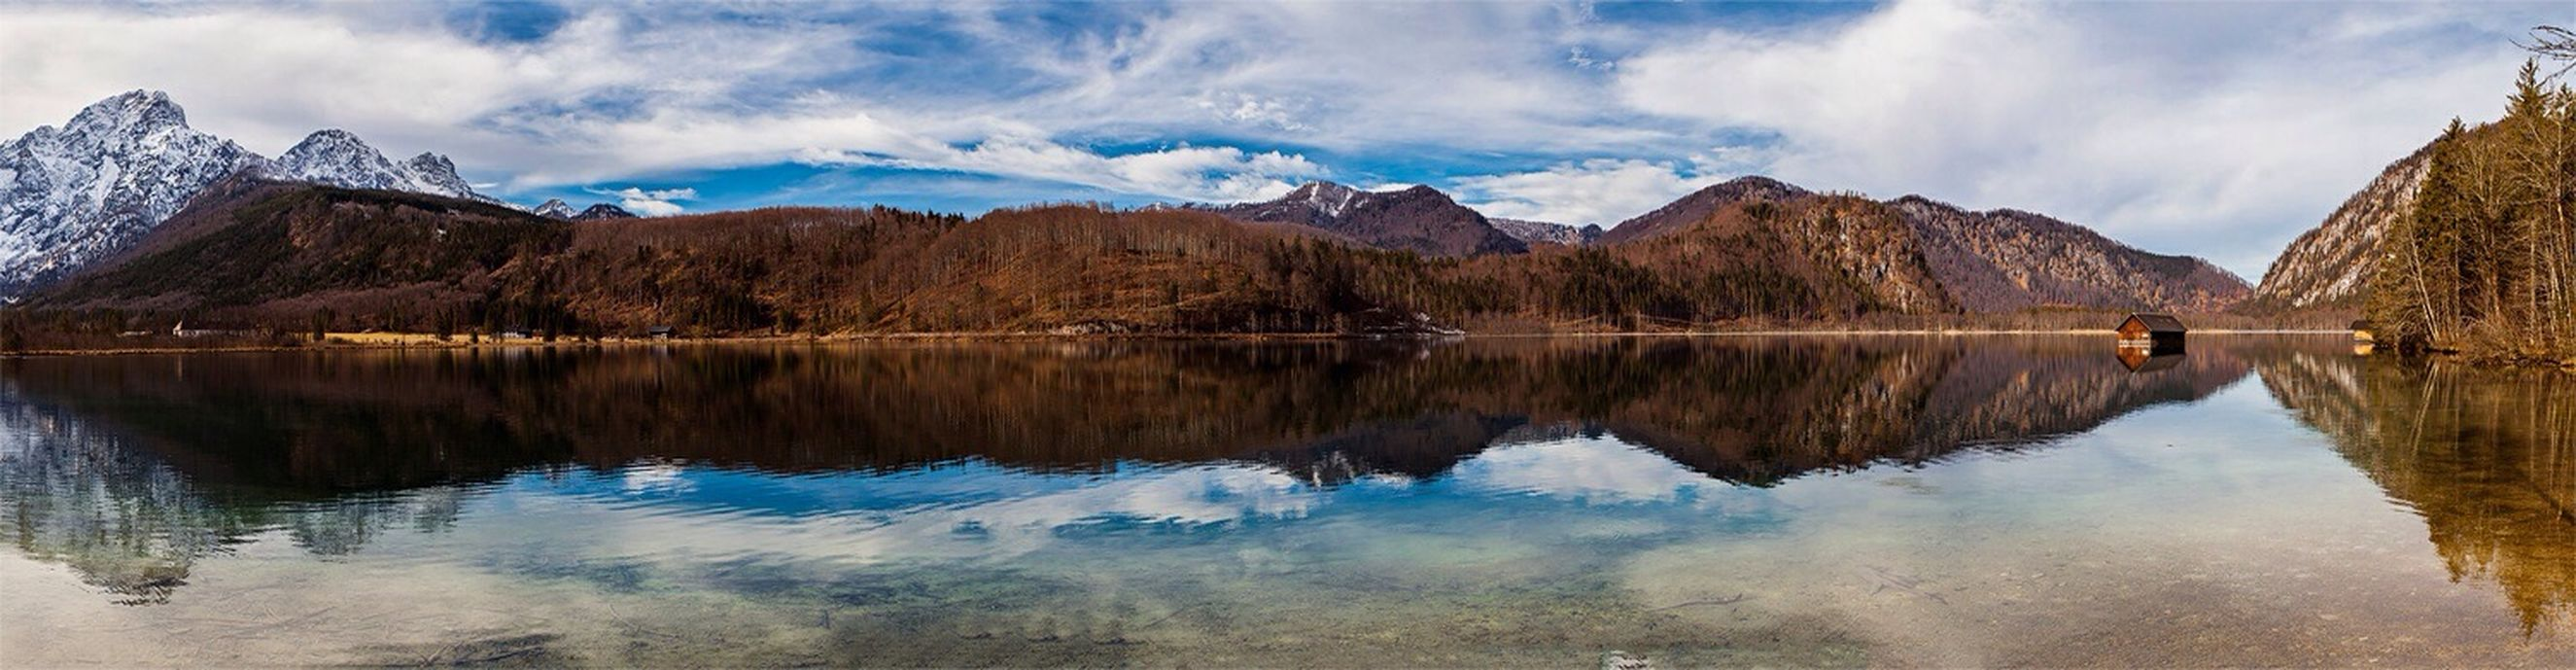 Panorama Landscape Photography Water